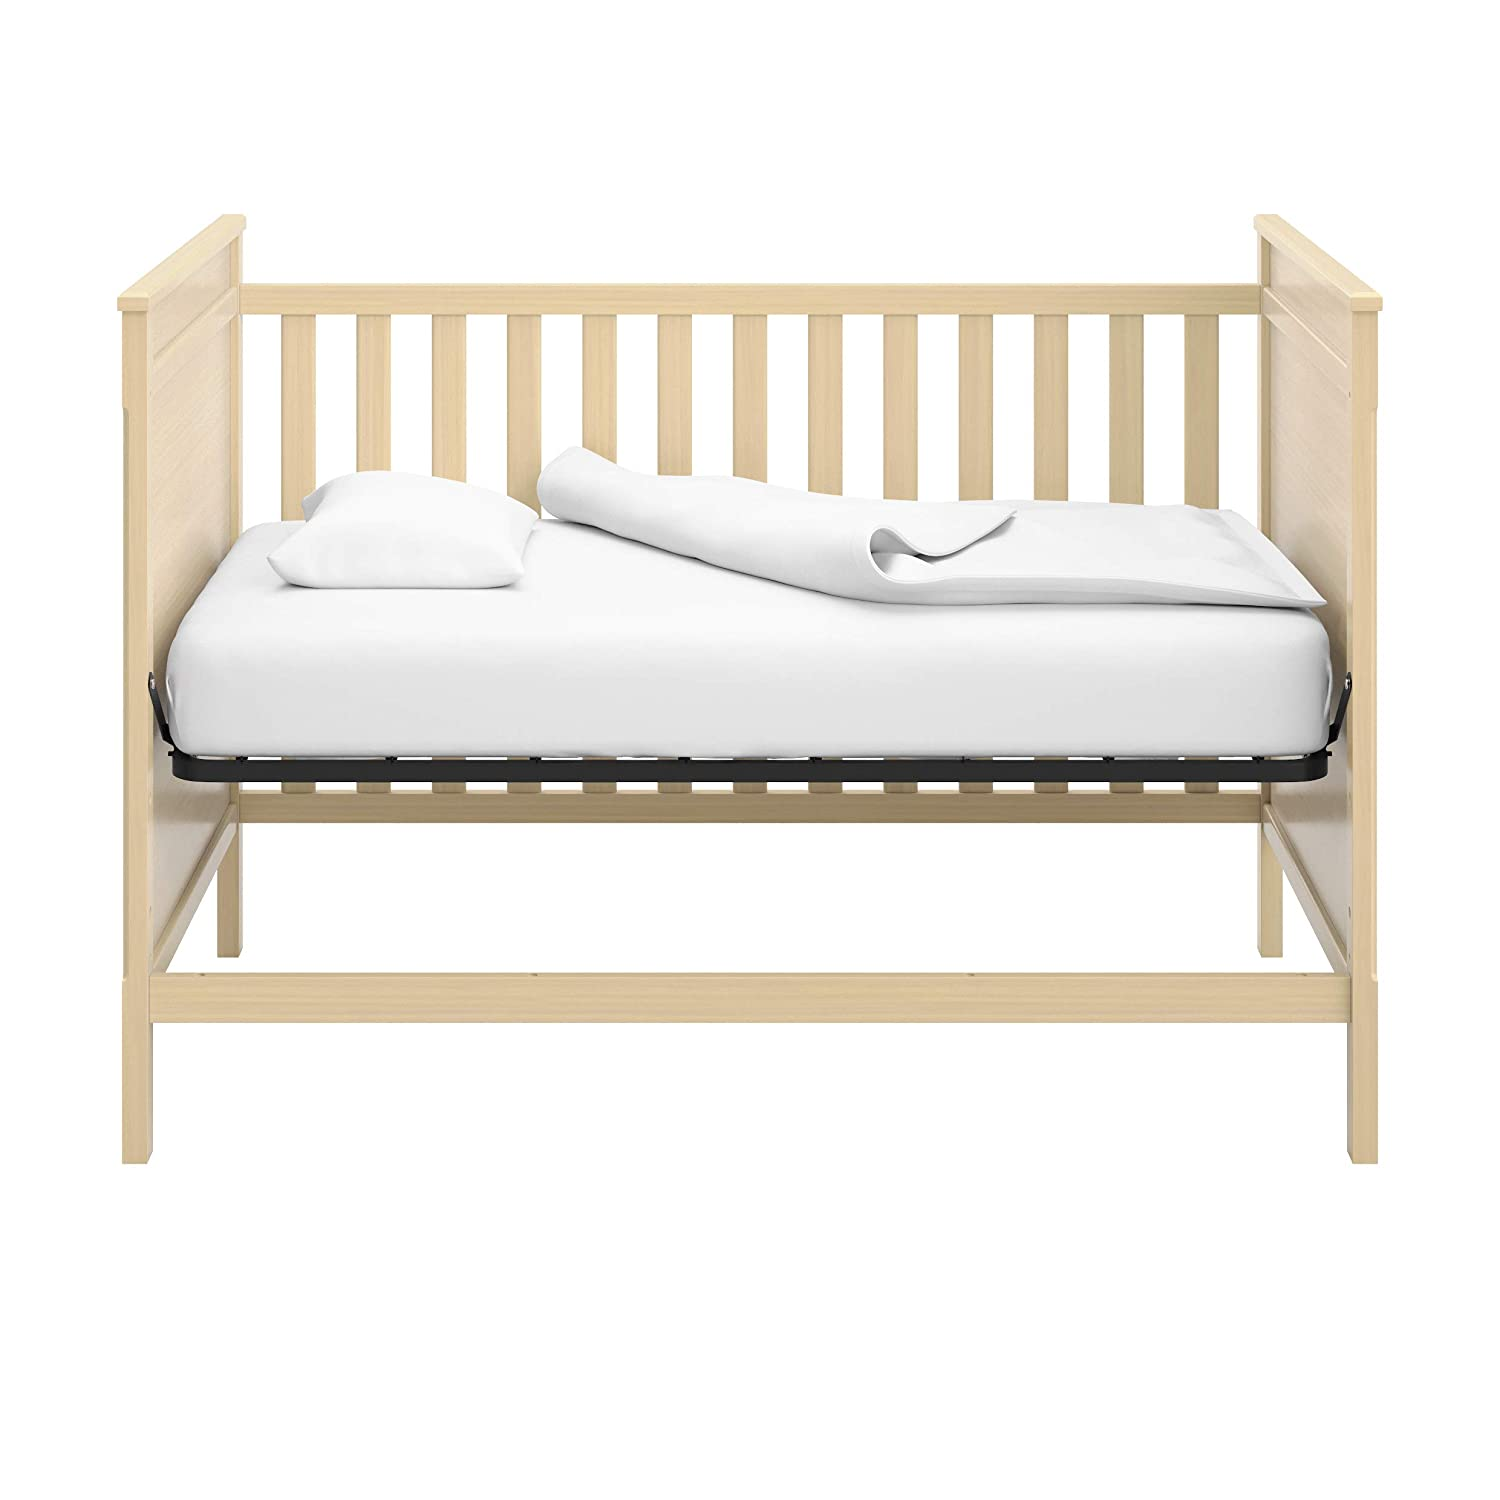 3-Position Adjustable Height Mattress Storkcraft Eastwood 3-in-1 Convertible Crib Easily Converts to Toddler Bed /& Day Bed